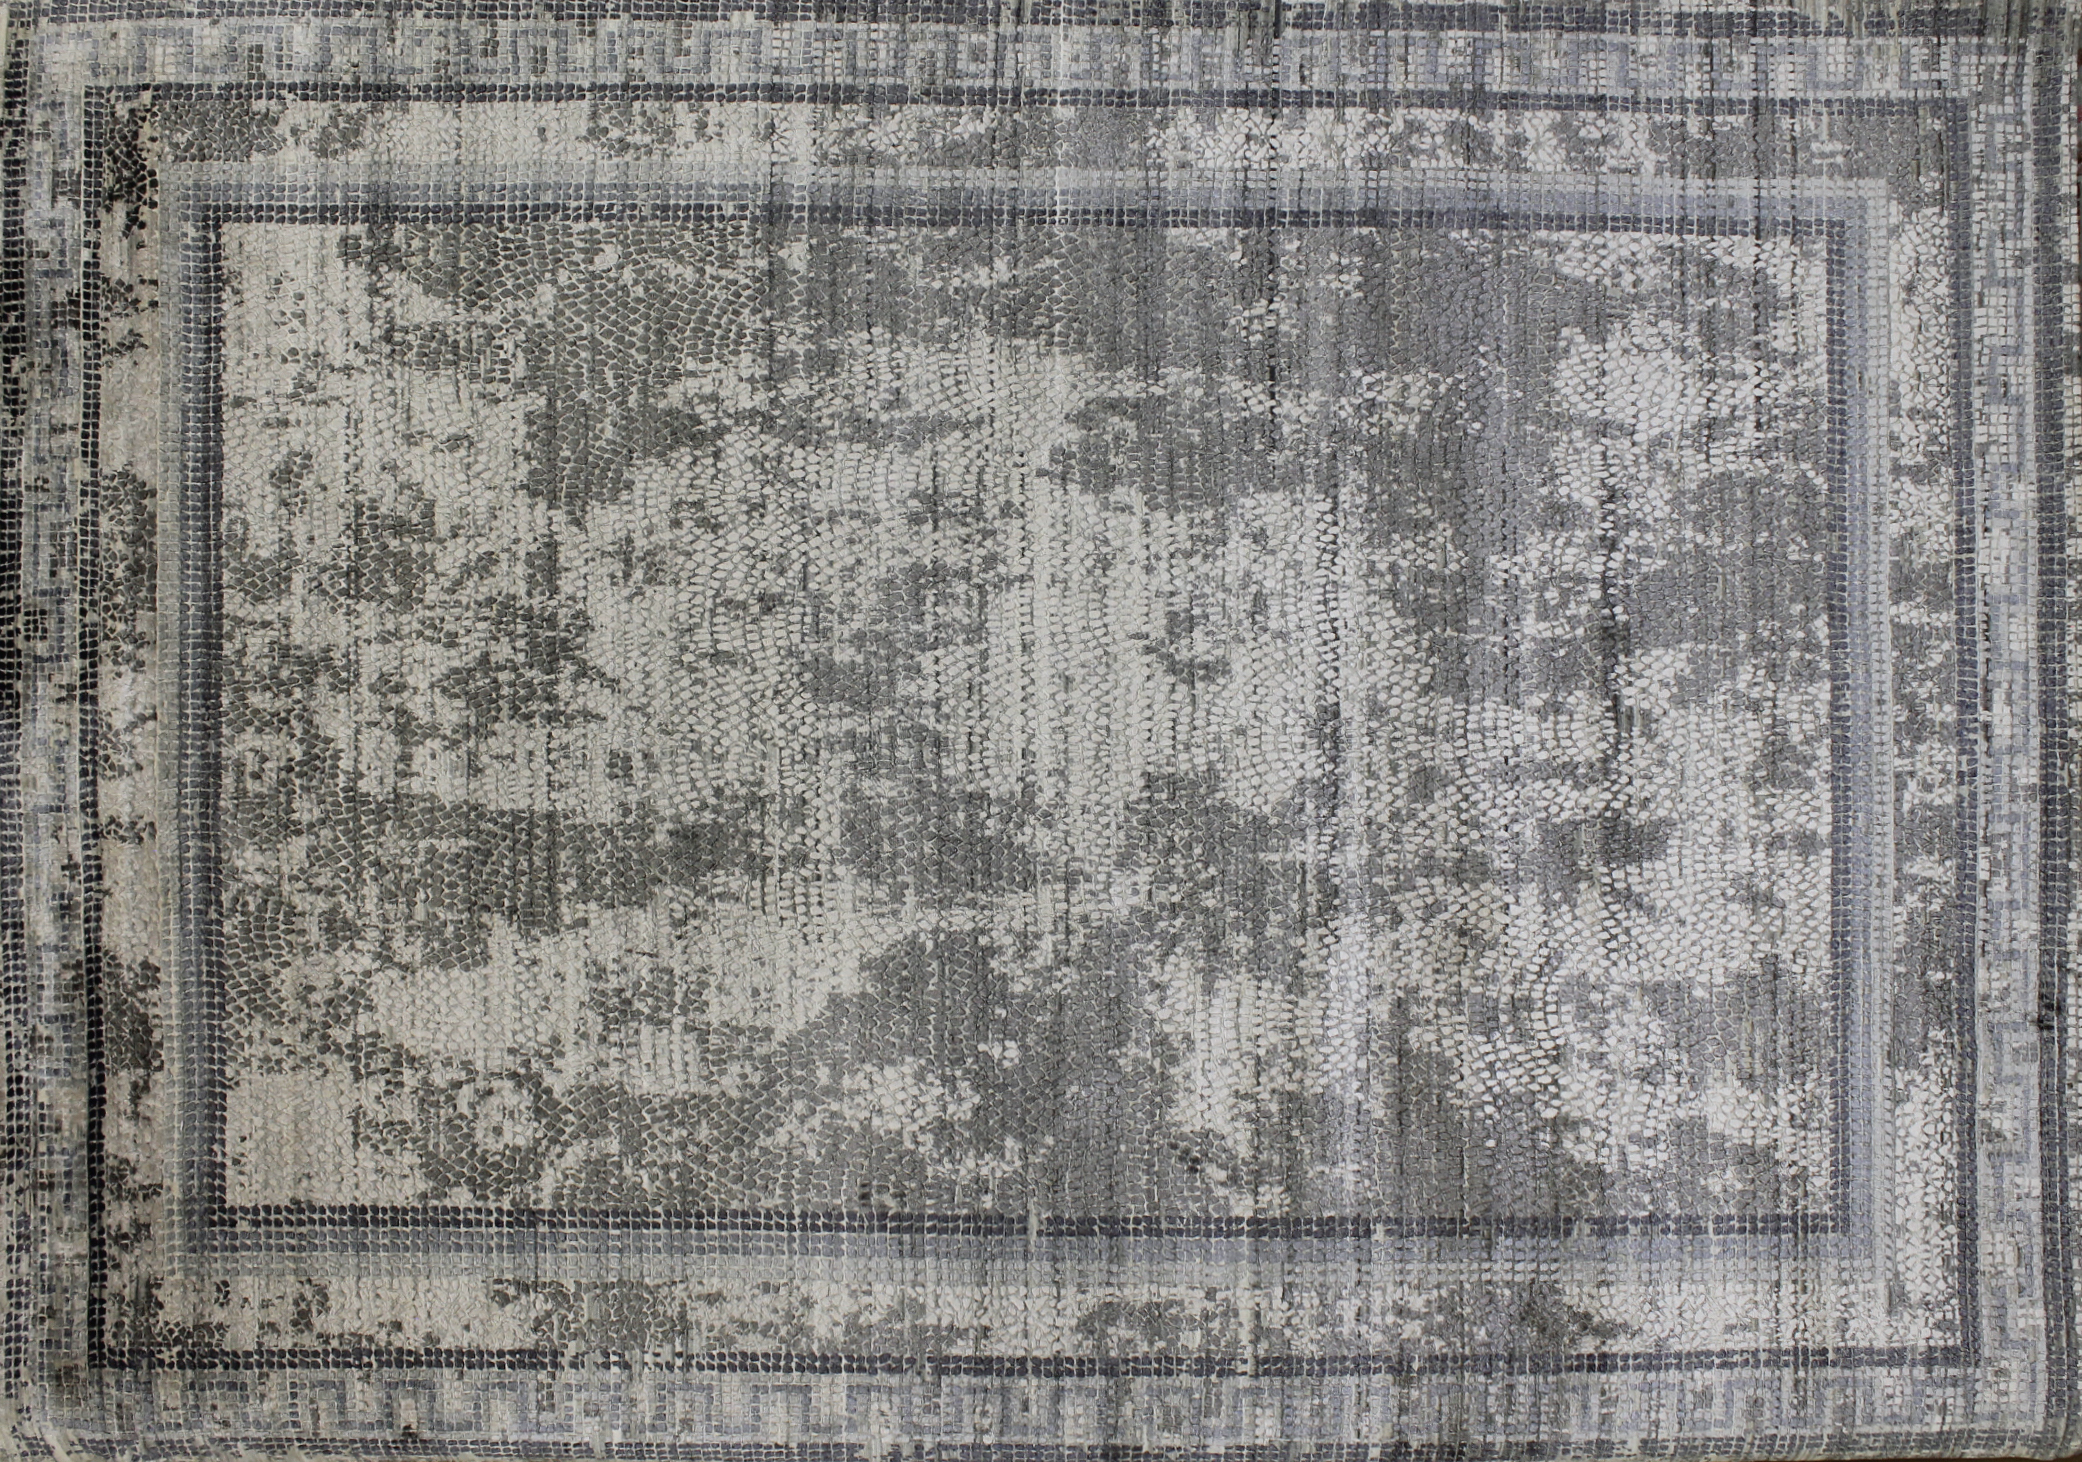 10x14 Transitional Hand Knotted Wool & Viscose Area Rug - MR022661